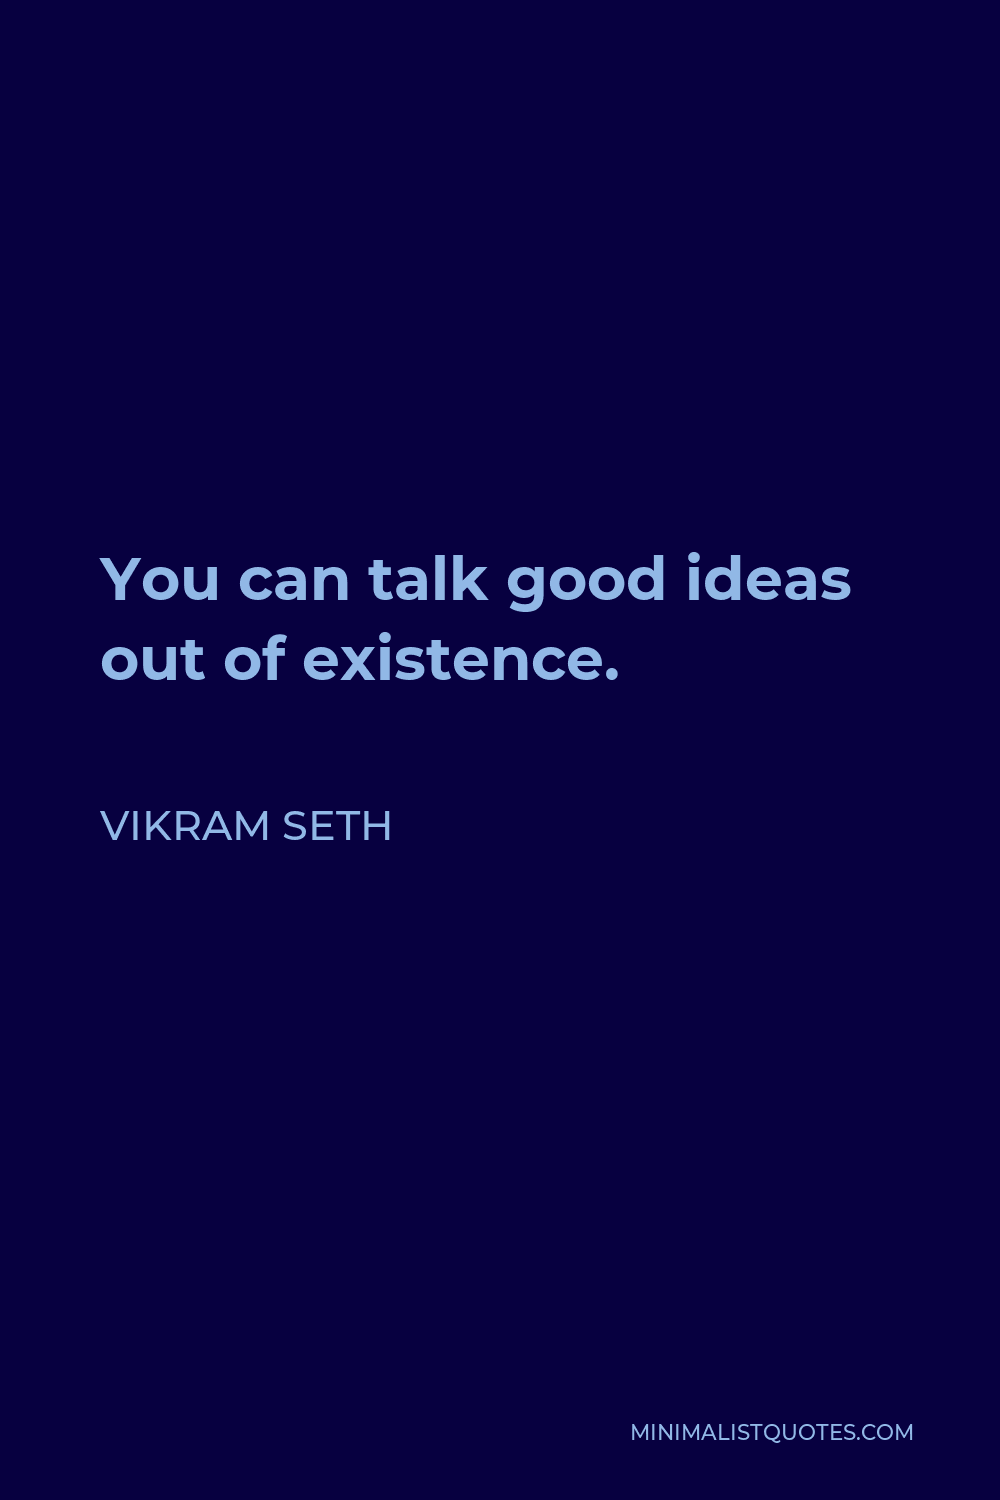 Vikram Seth Quote - You can talk good ideas out of existence.